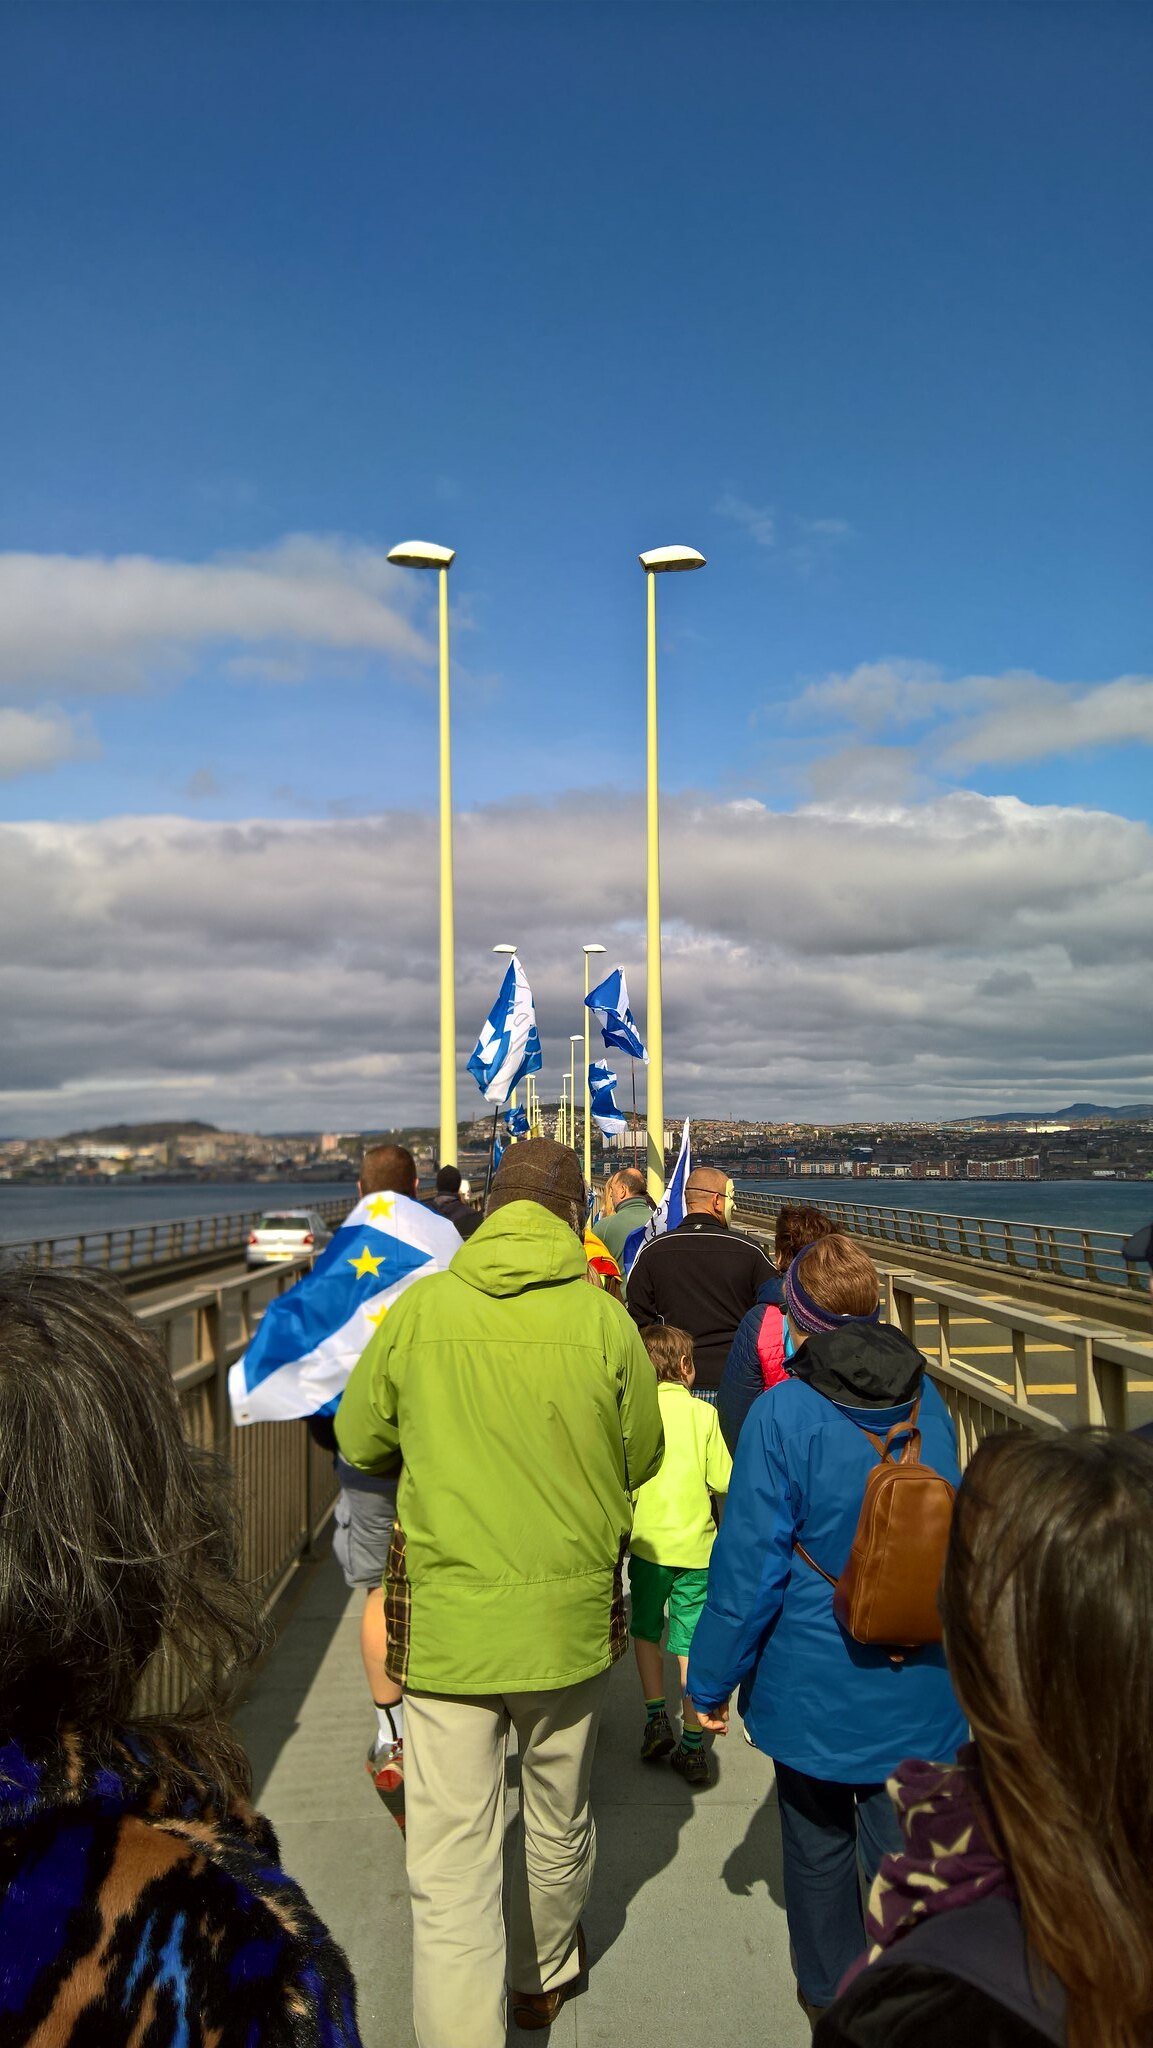 People marching across the Tay Bridge